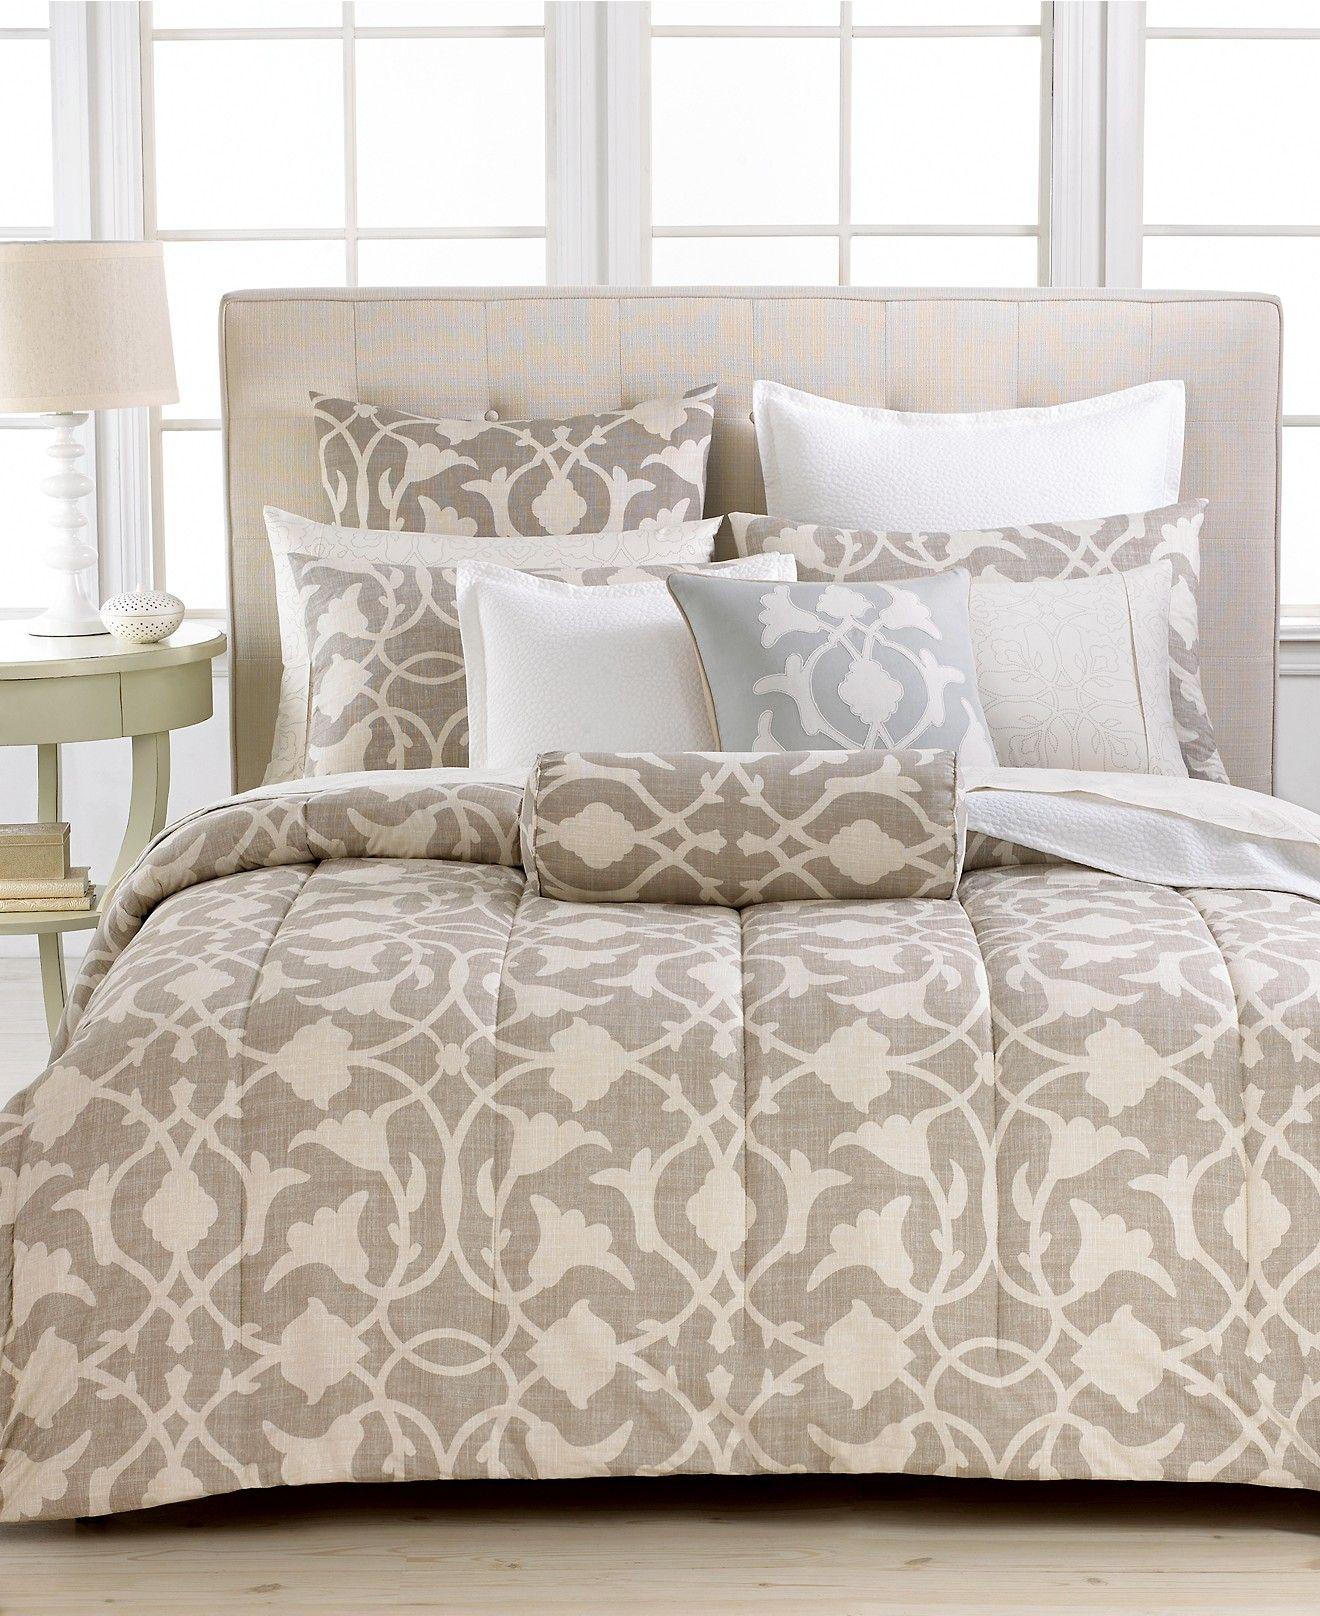 Barbara Barry Poetical Comforter Sets Bedding Collections Bed